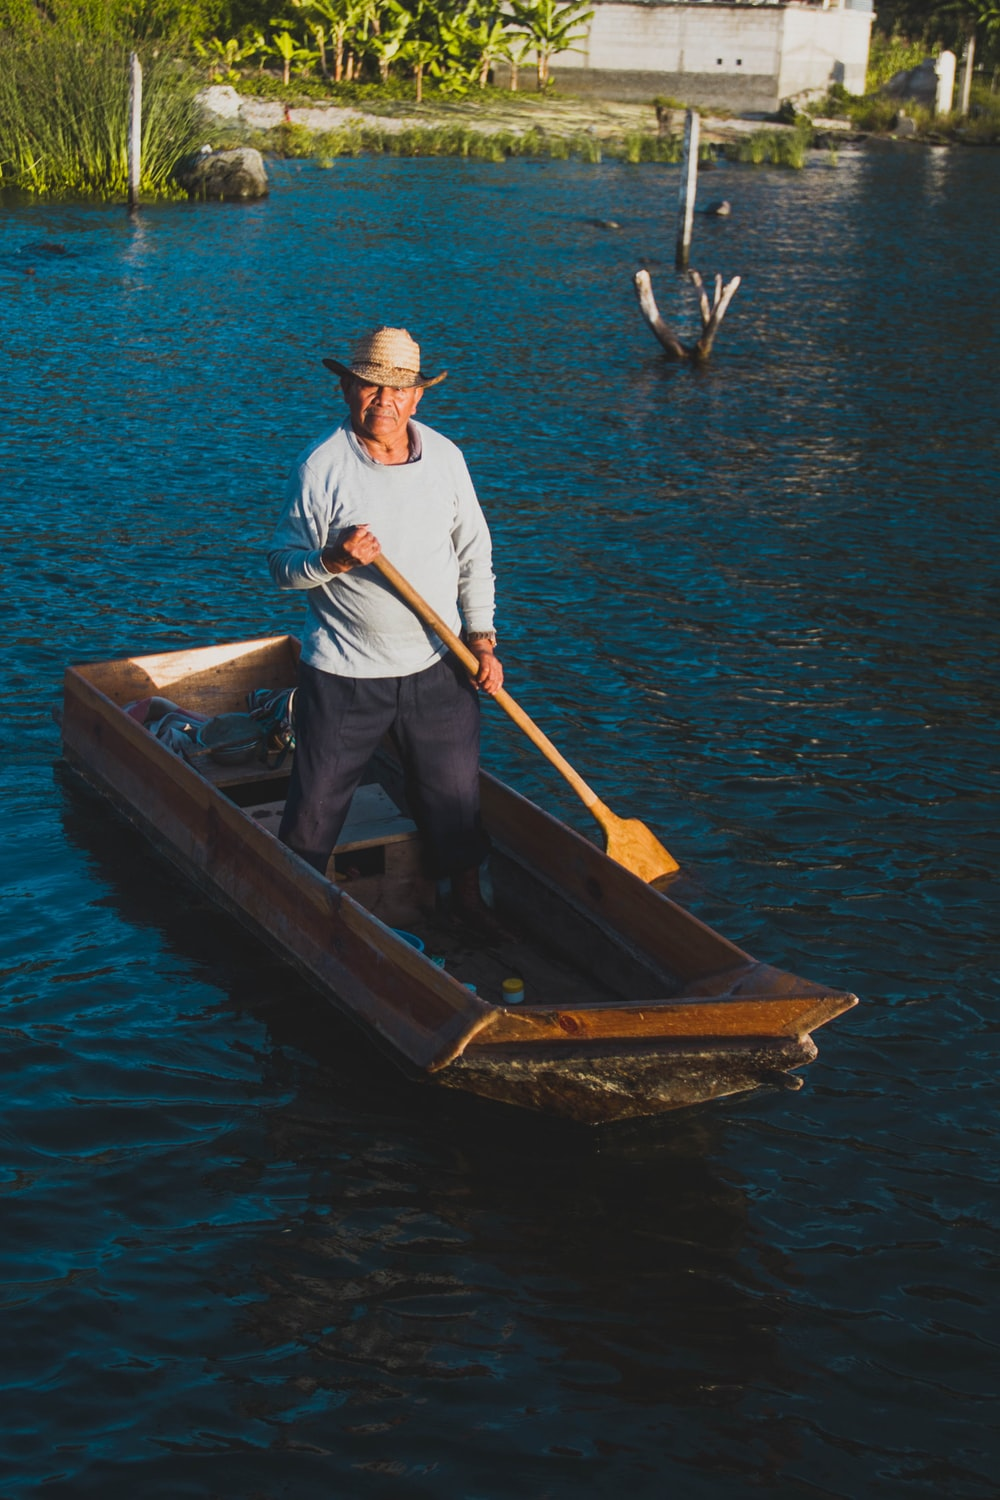 man riding on brown row boat during daytime